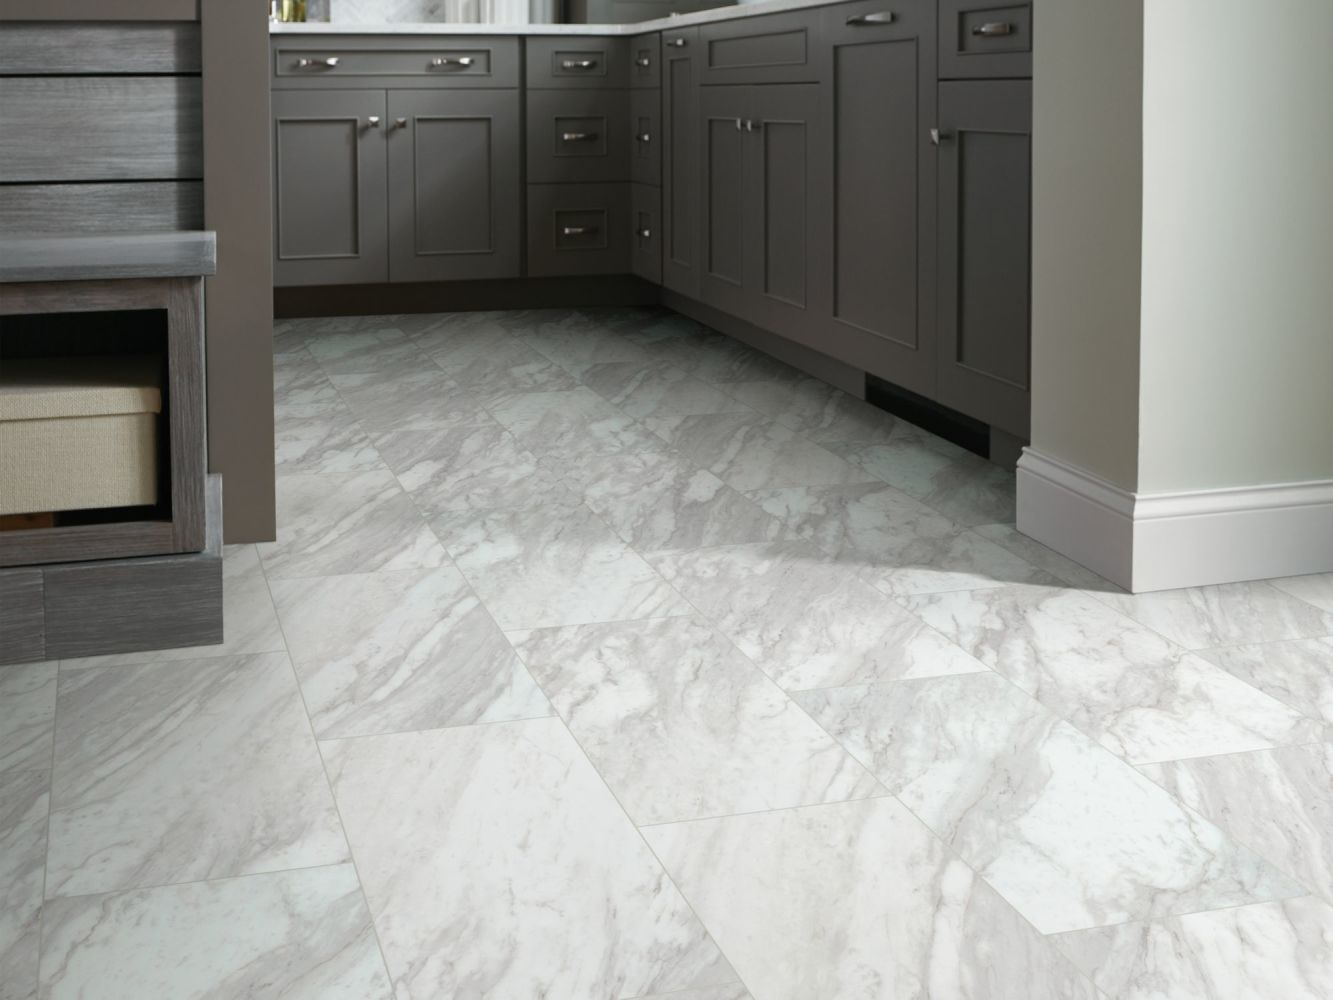 Shaw Floors Resilient Property Solutions Urban Organics Oyster 01010_VE280